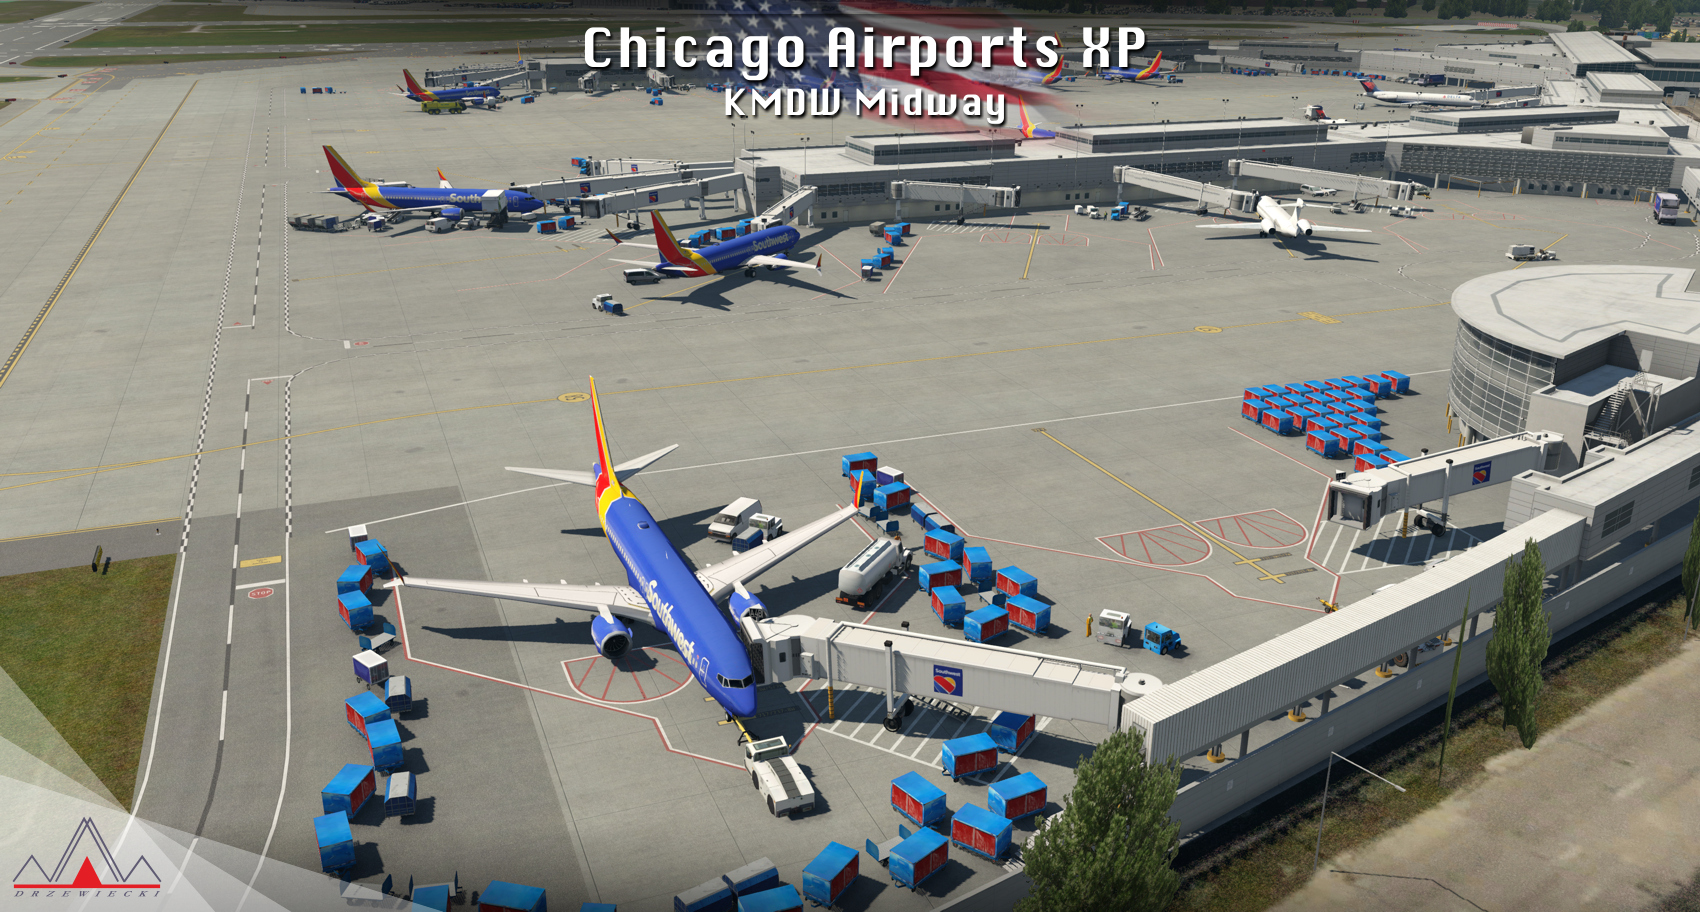 DRZEWIECKI DESIGN - CHICAGO AIRPORTS XP X-PLANE 11